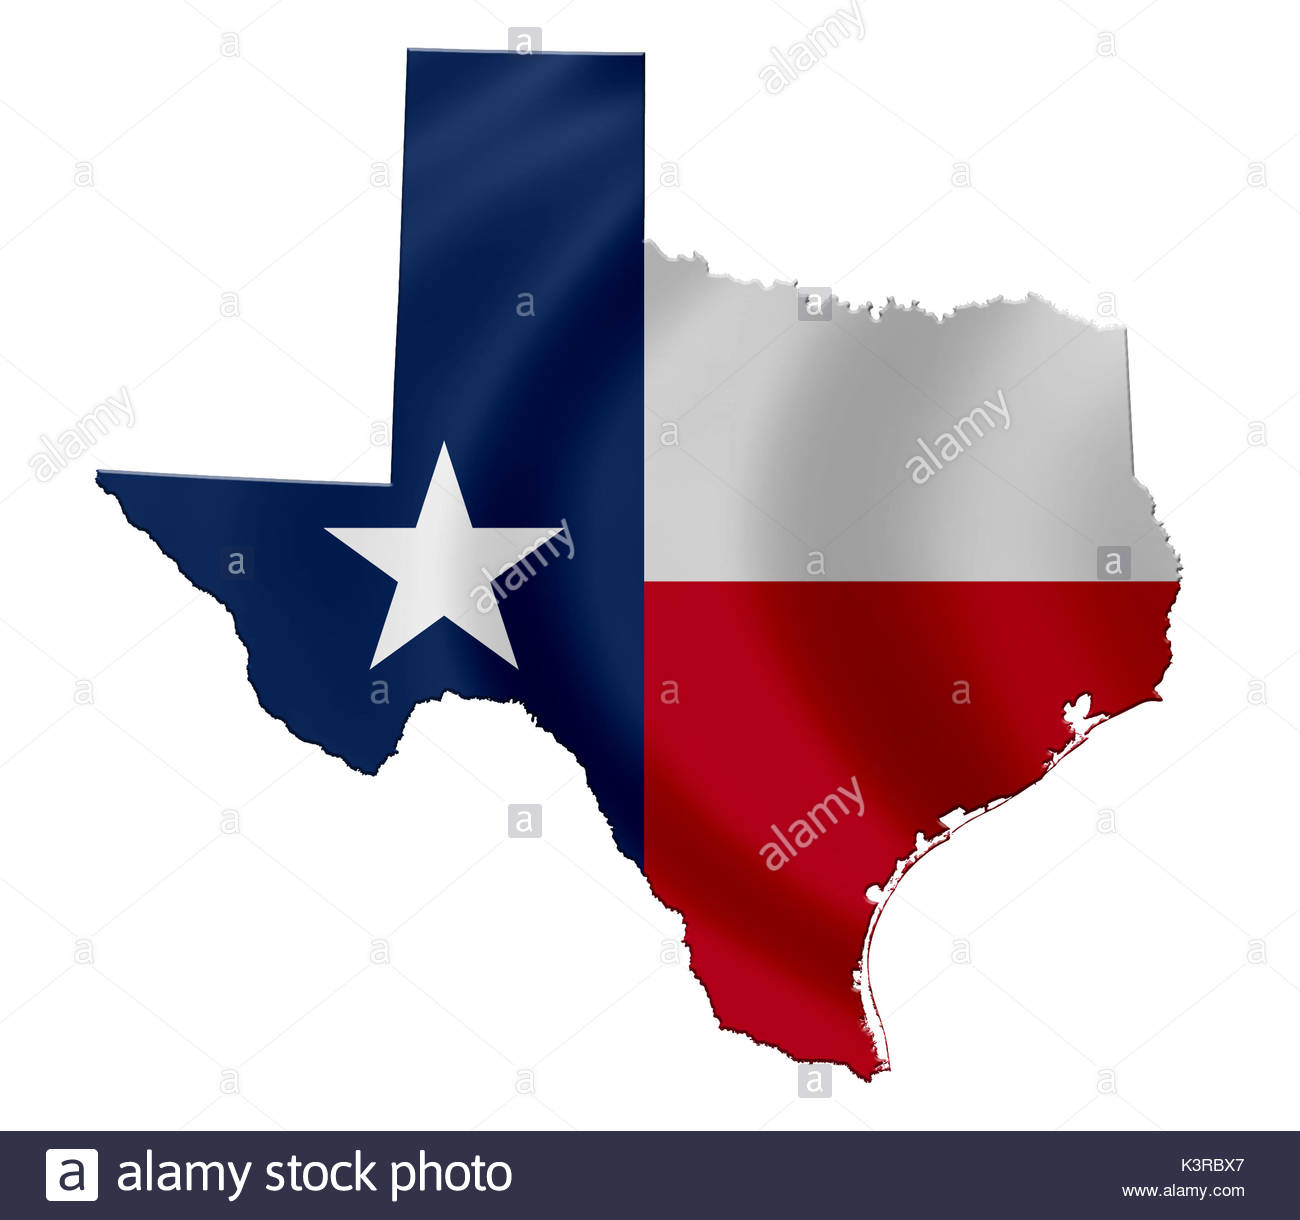 State Of Texas Map Icon Stock Photo Royalty Free Image - State of texas map